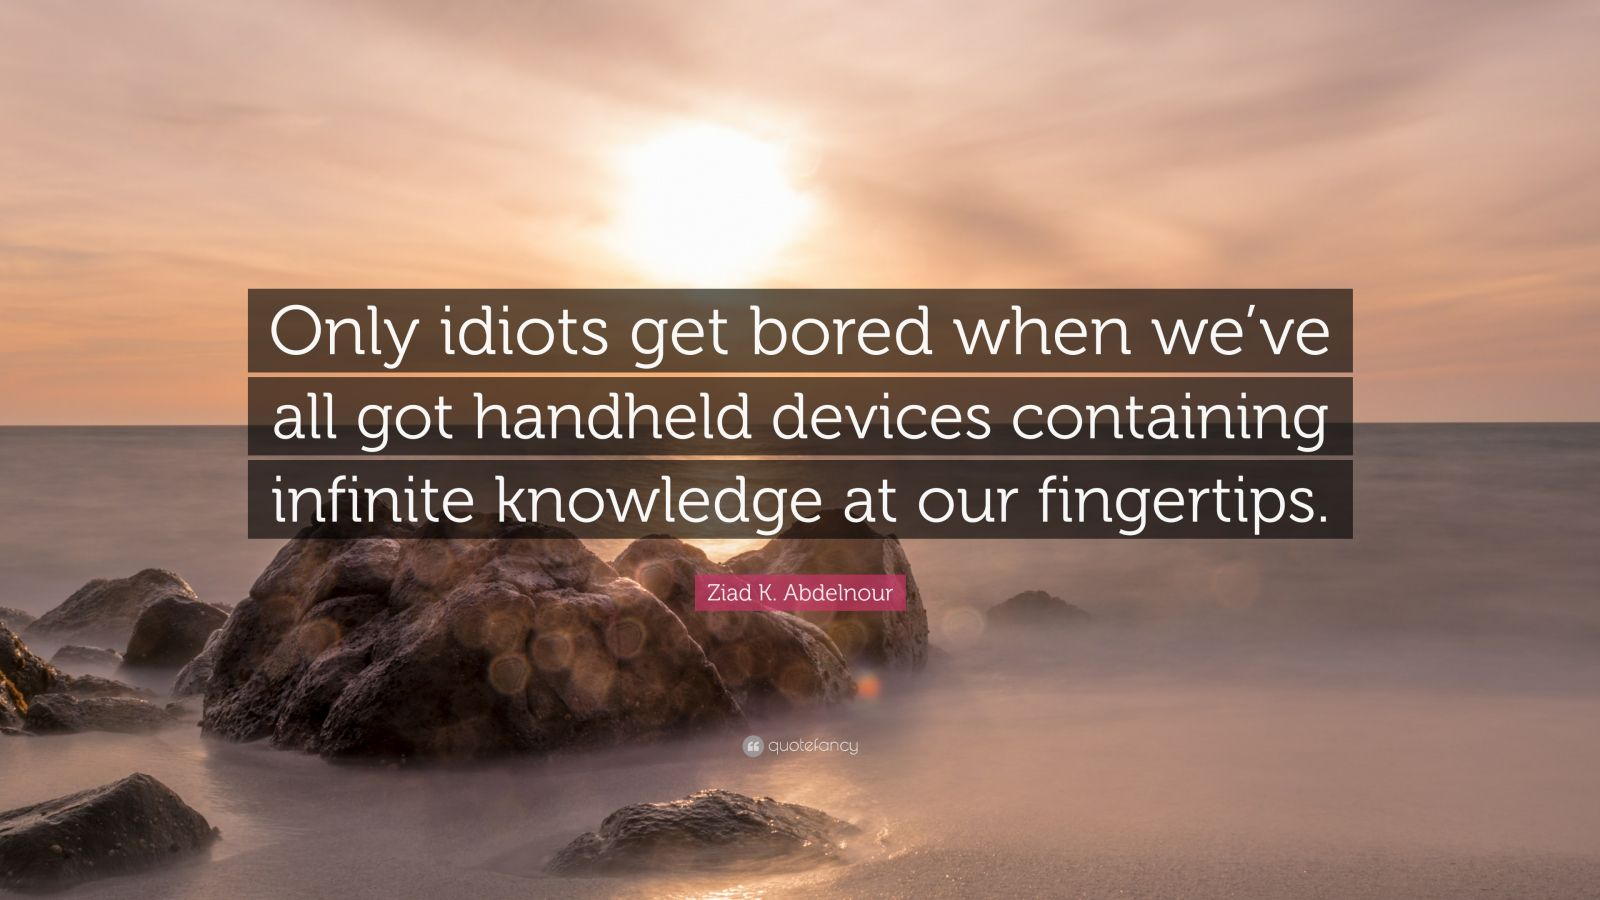 """Ziad K. Abdelnour Quote: """"Only idiots get bored when we've all got handheld devices containing infinite knowledge at our fingertips."""""""